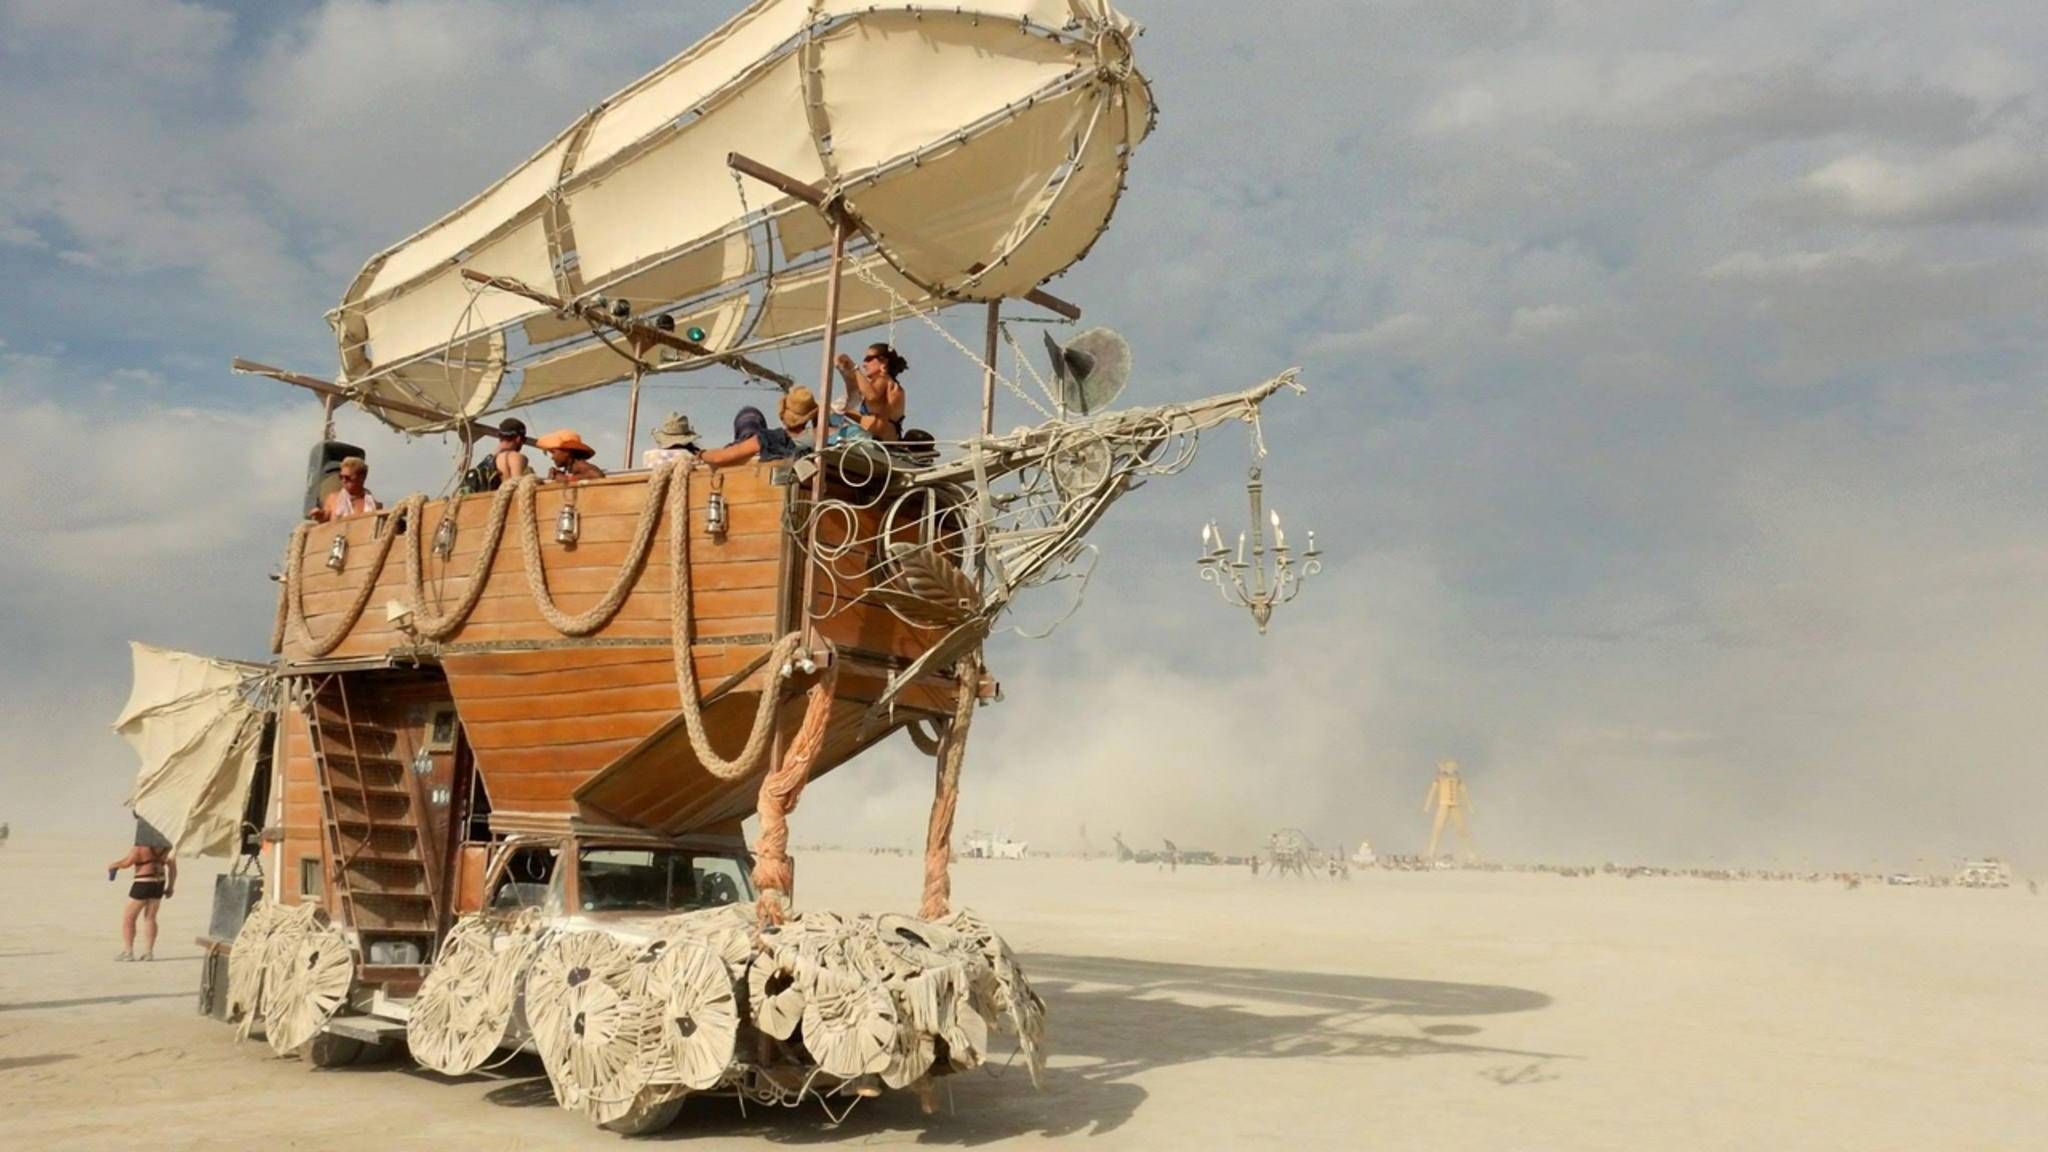 Mutant Vehicle Burning Man CC Wikimedia Anne Gomez 2015